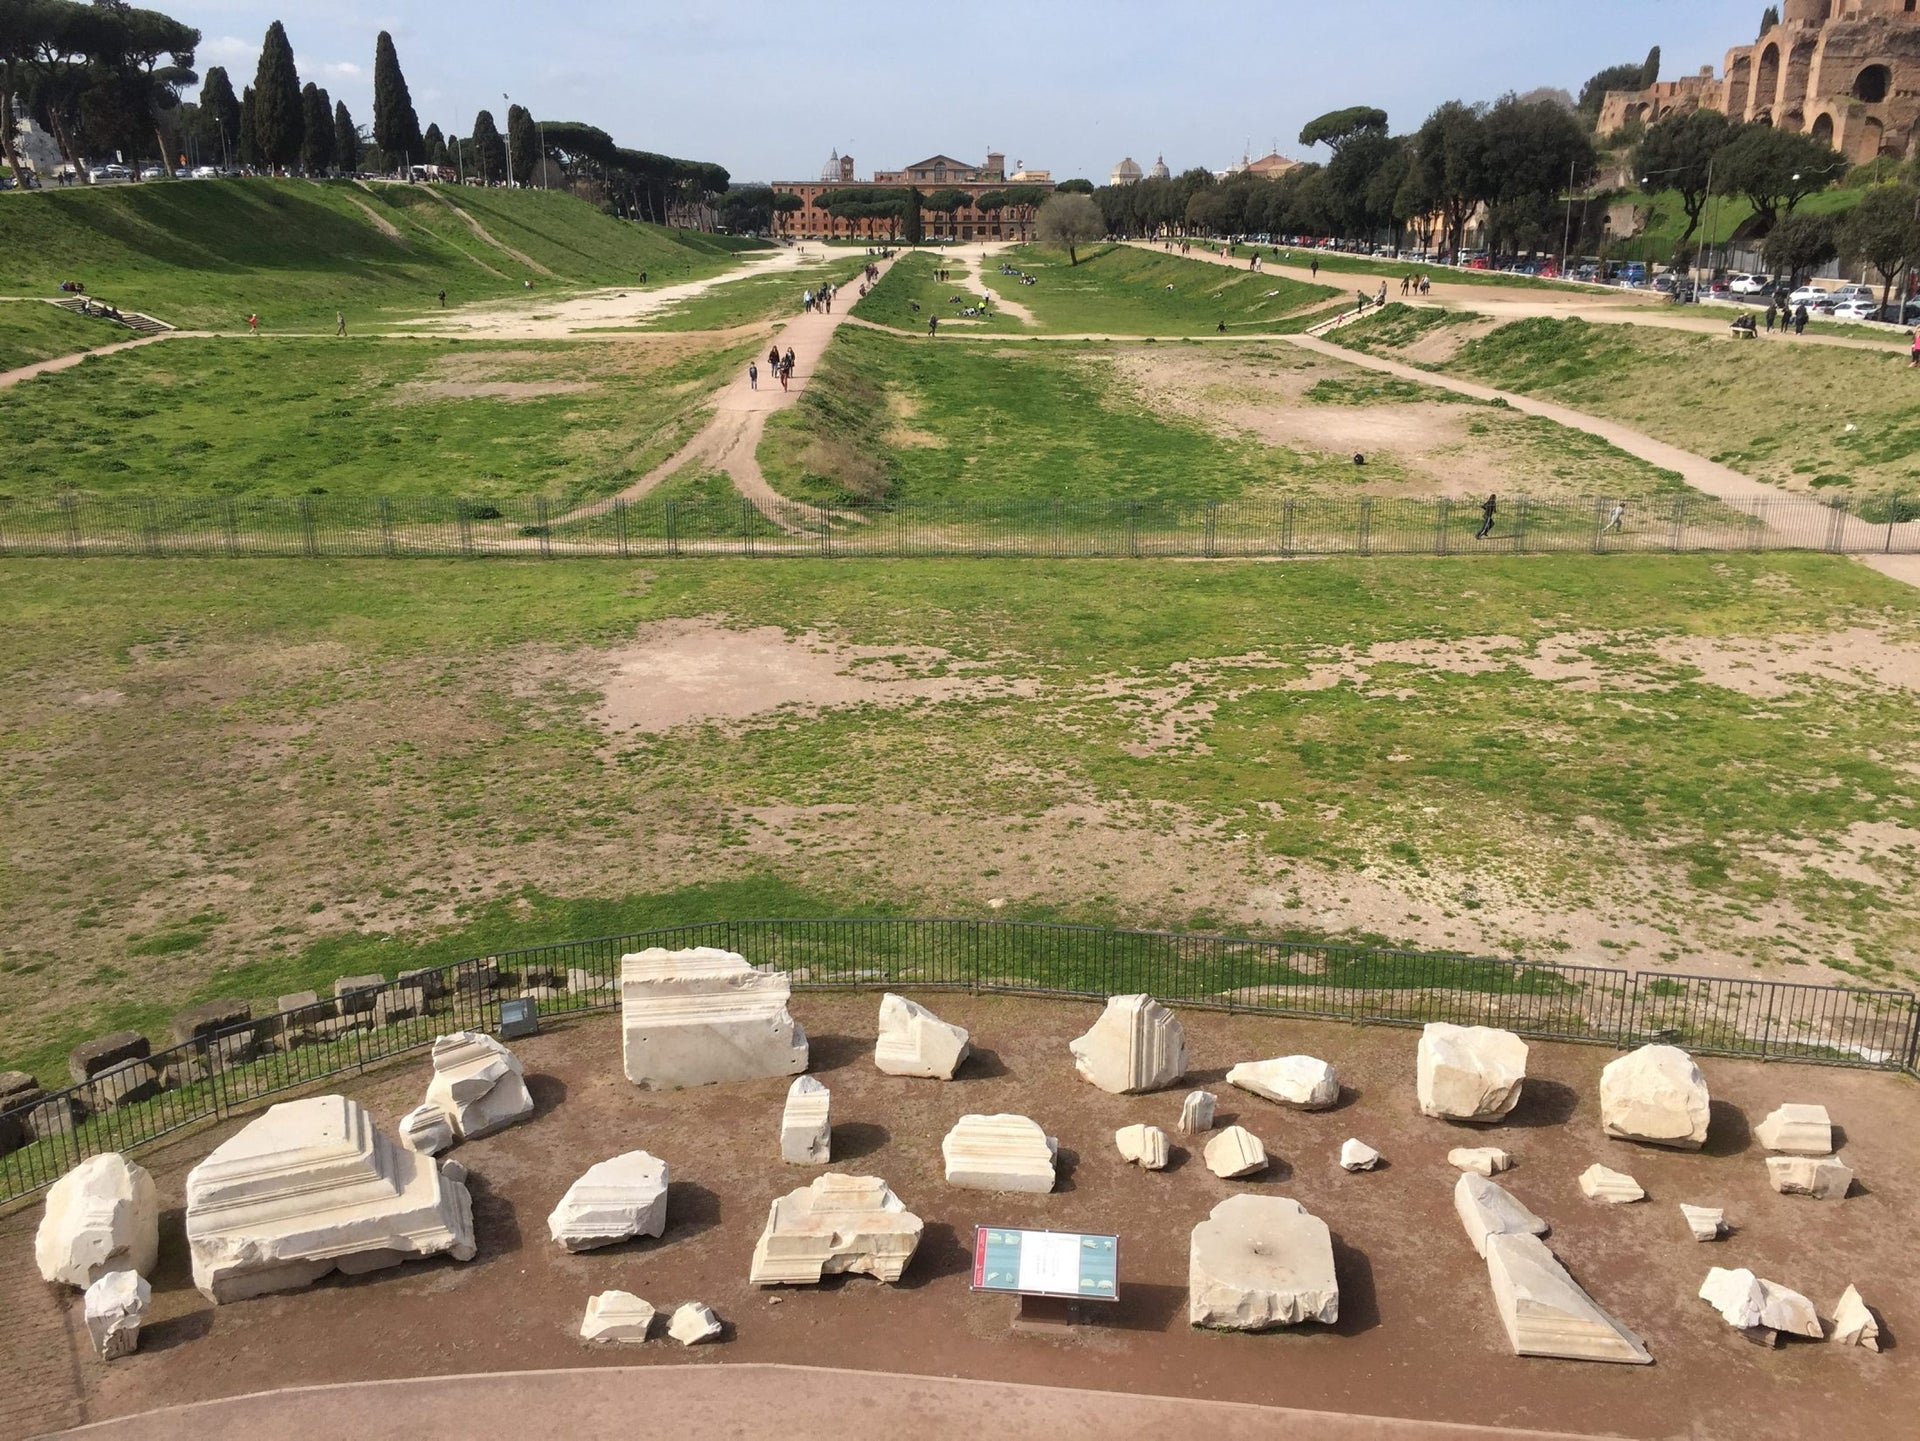 Fragments of the decoration of the Arch of Titus arranged in a display in the Circus Maximus in Rome.